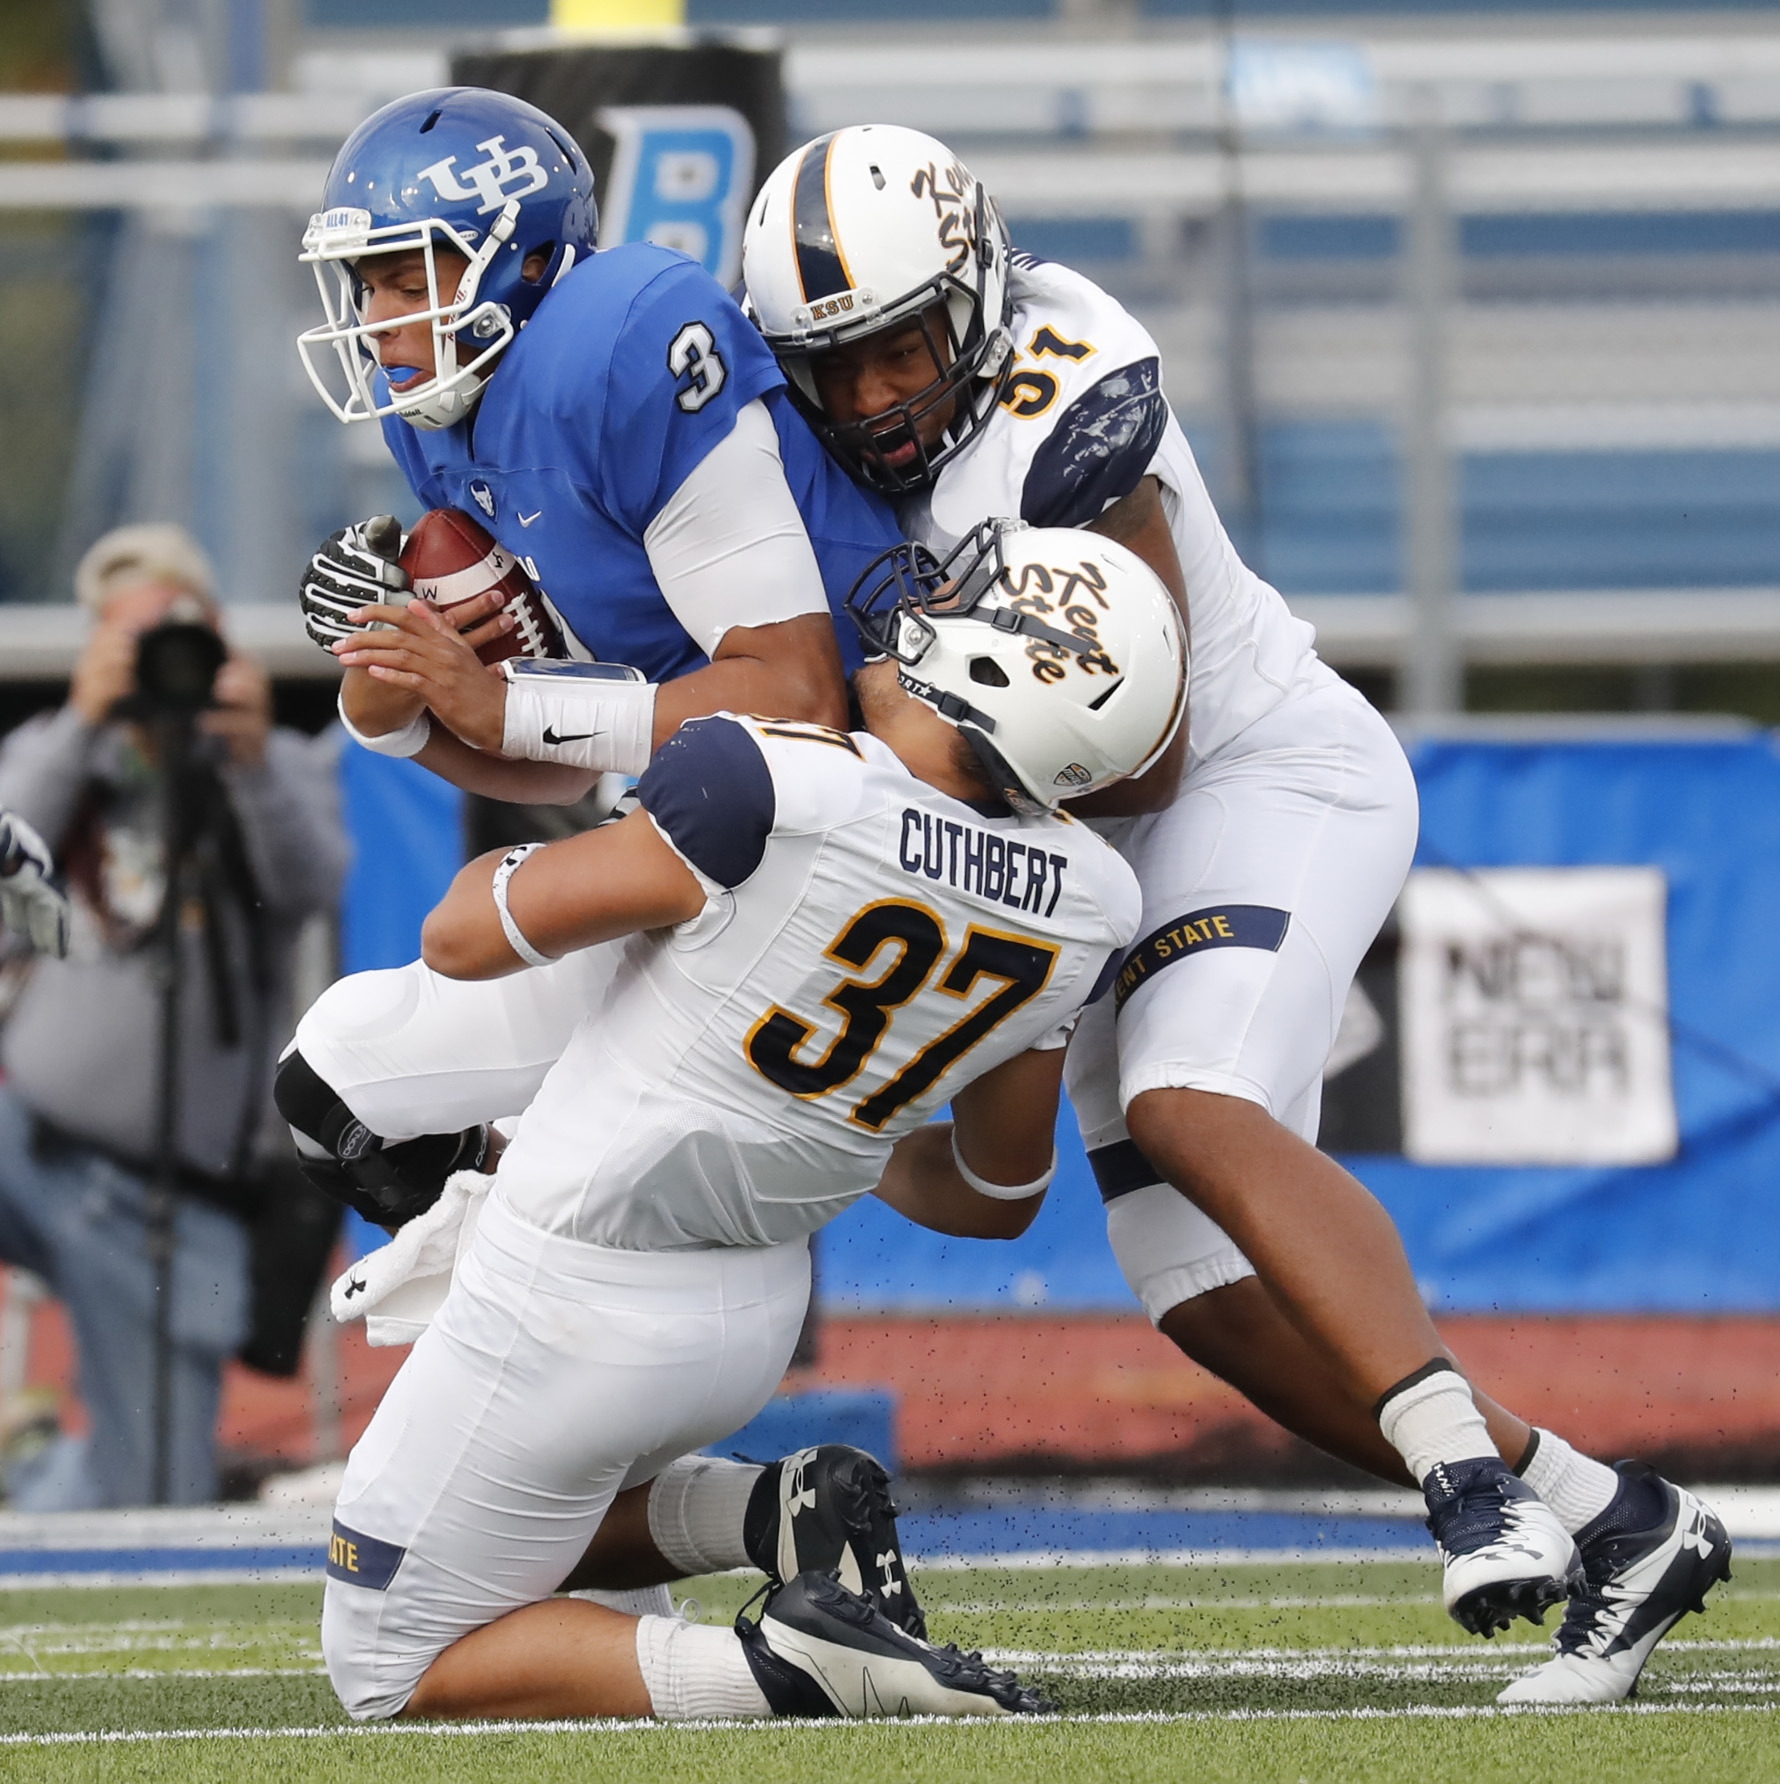 UB quarterback Tyree Jackson gets sacked by Kent State's Nick Cuthbert (37) and Terence Waugh. (Harry Scull Jr./Buffalo News)